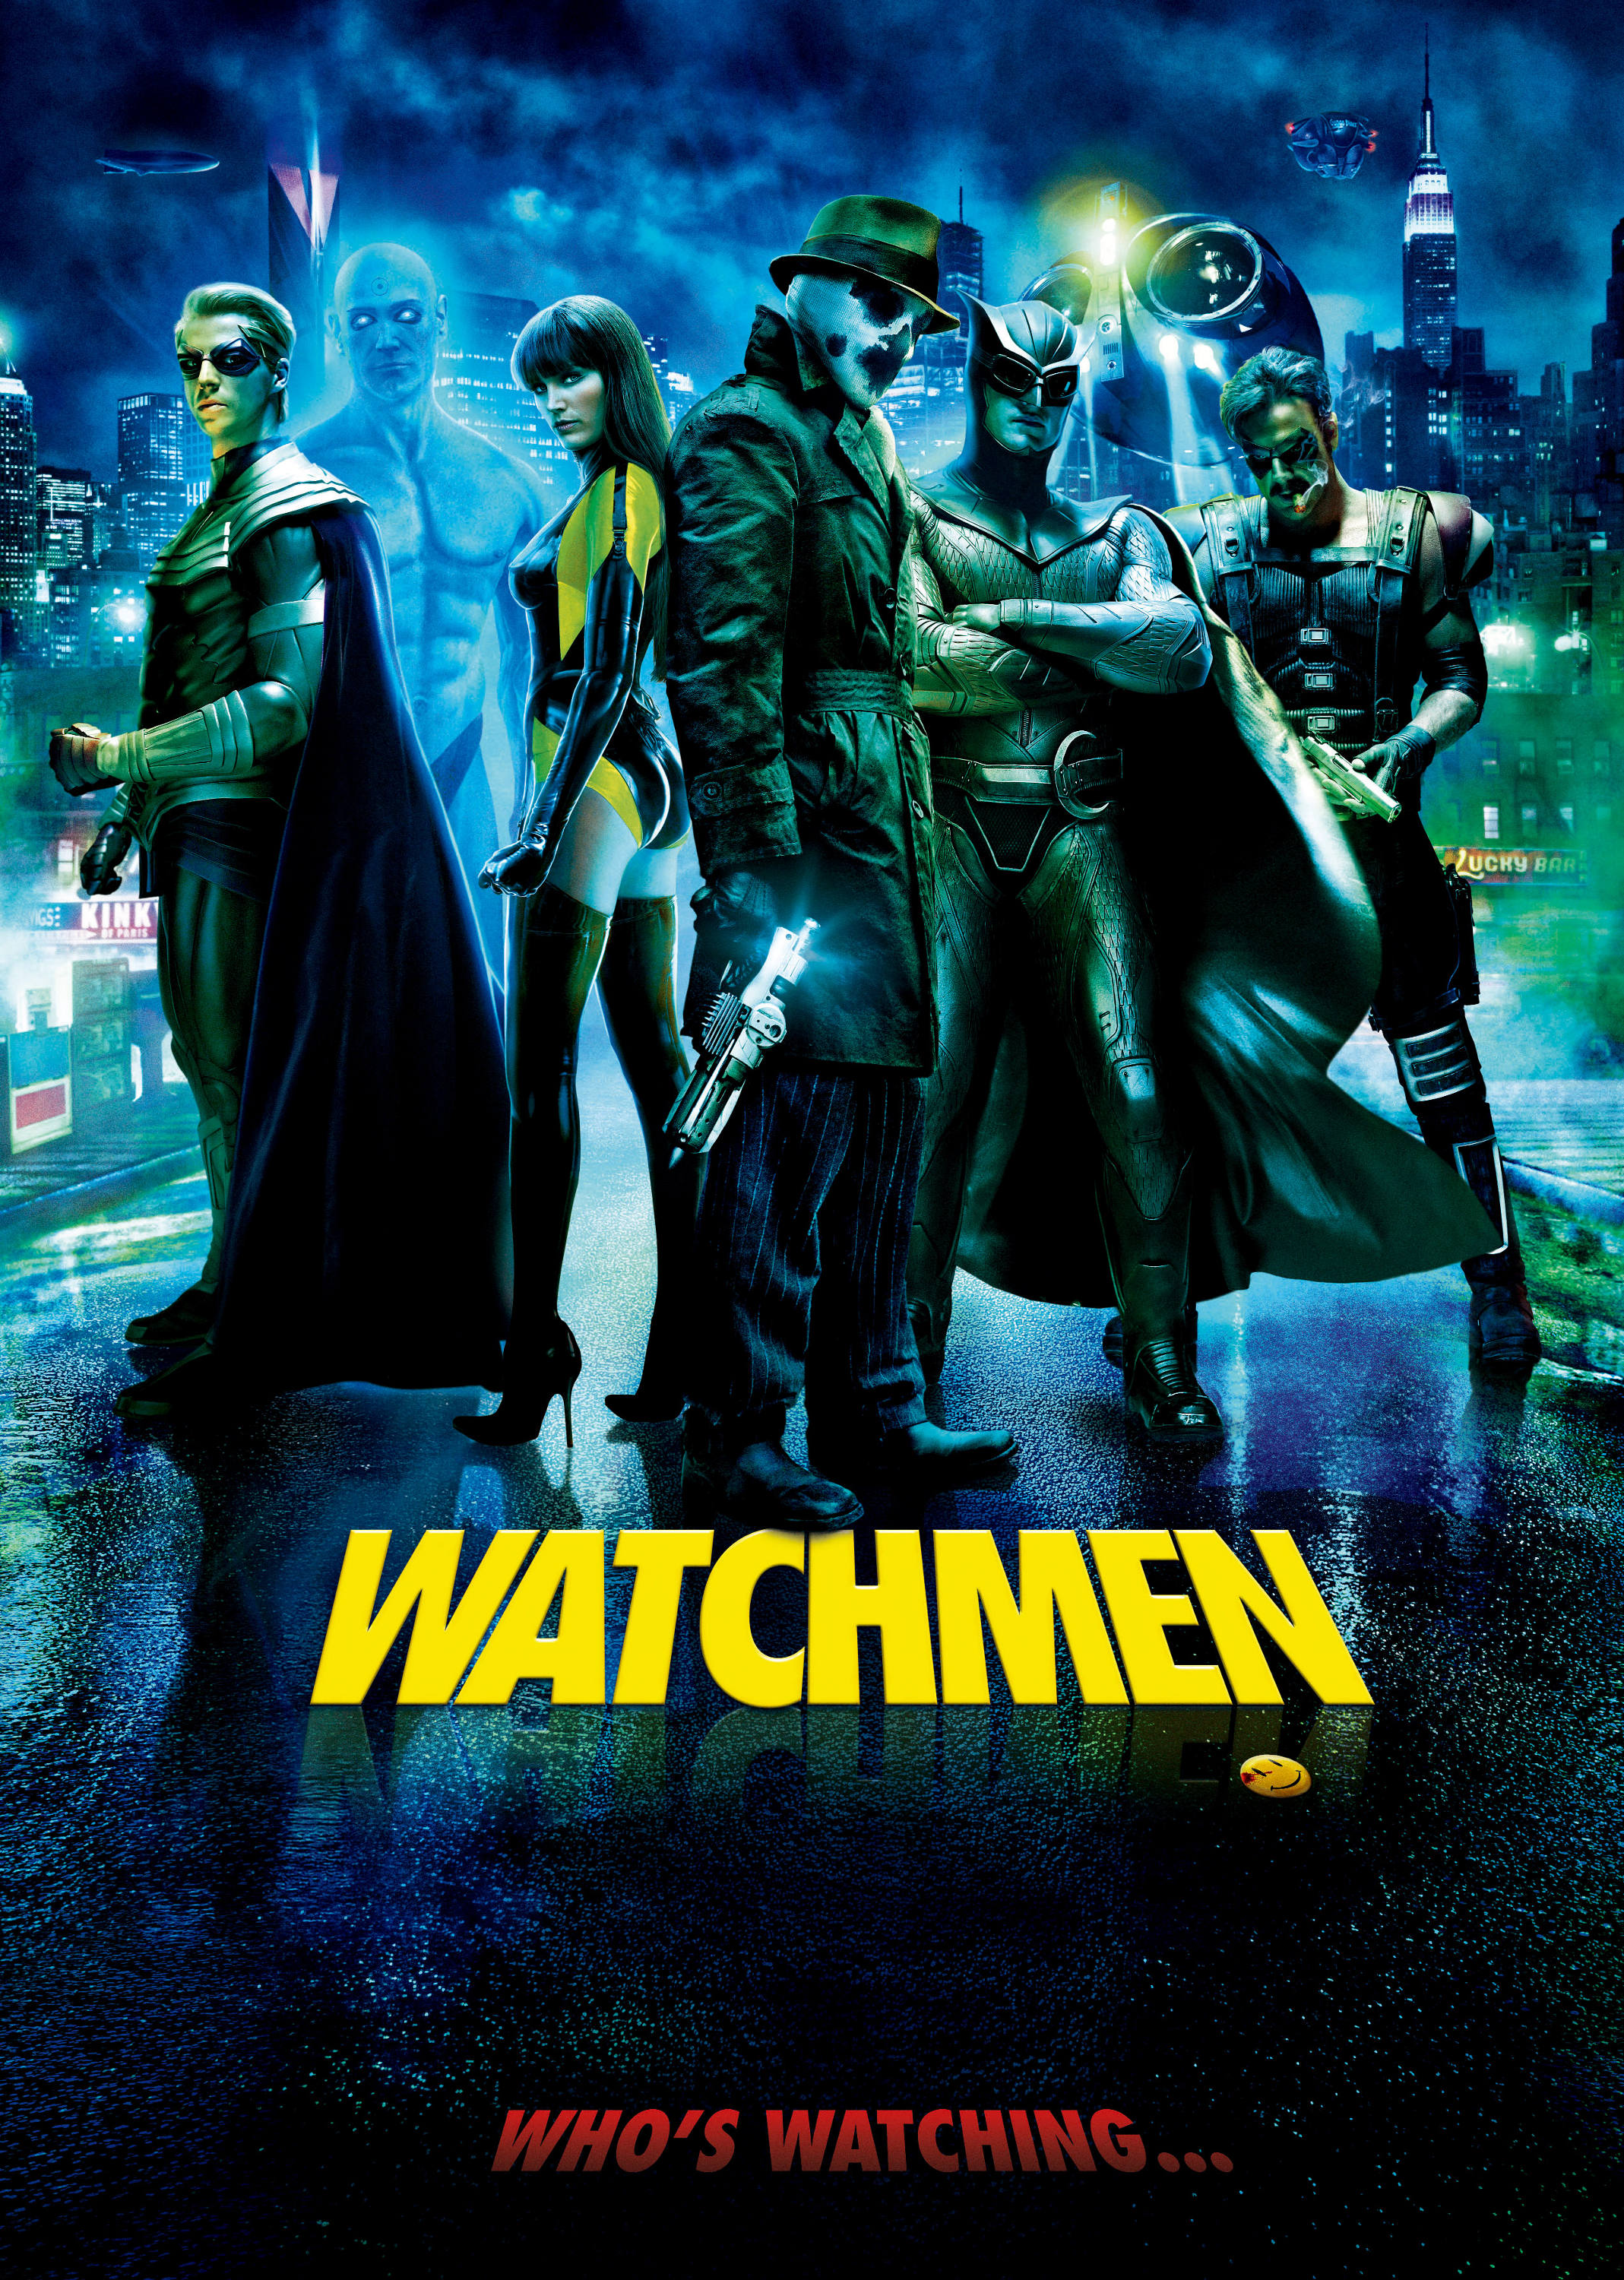 Official watchmen movie